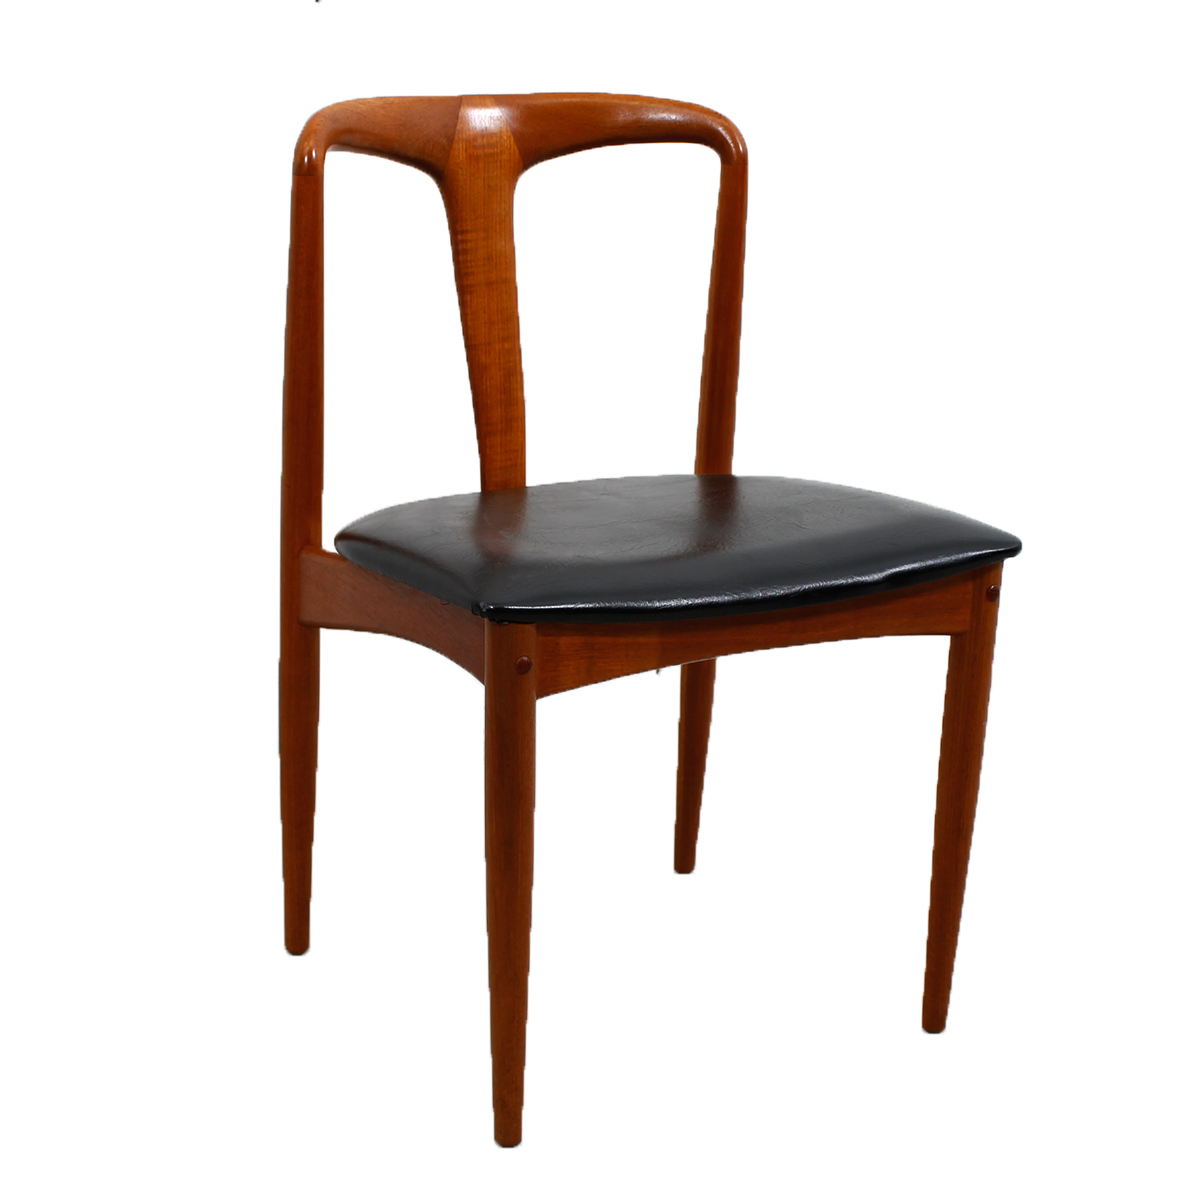 Set of Johannes Andersen for Uldum Møbelfabrik Juliane Teak Dining Chairs